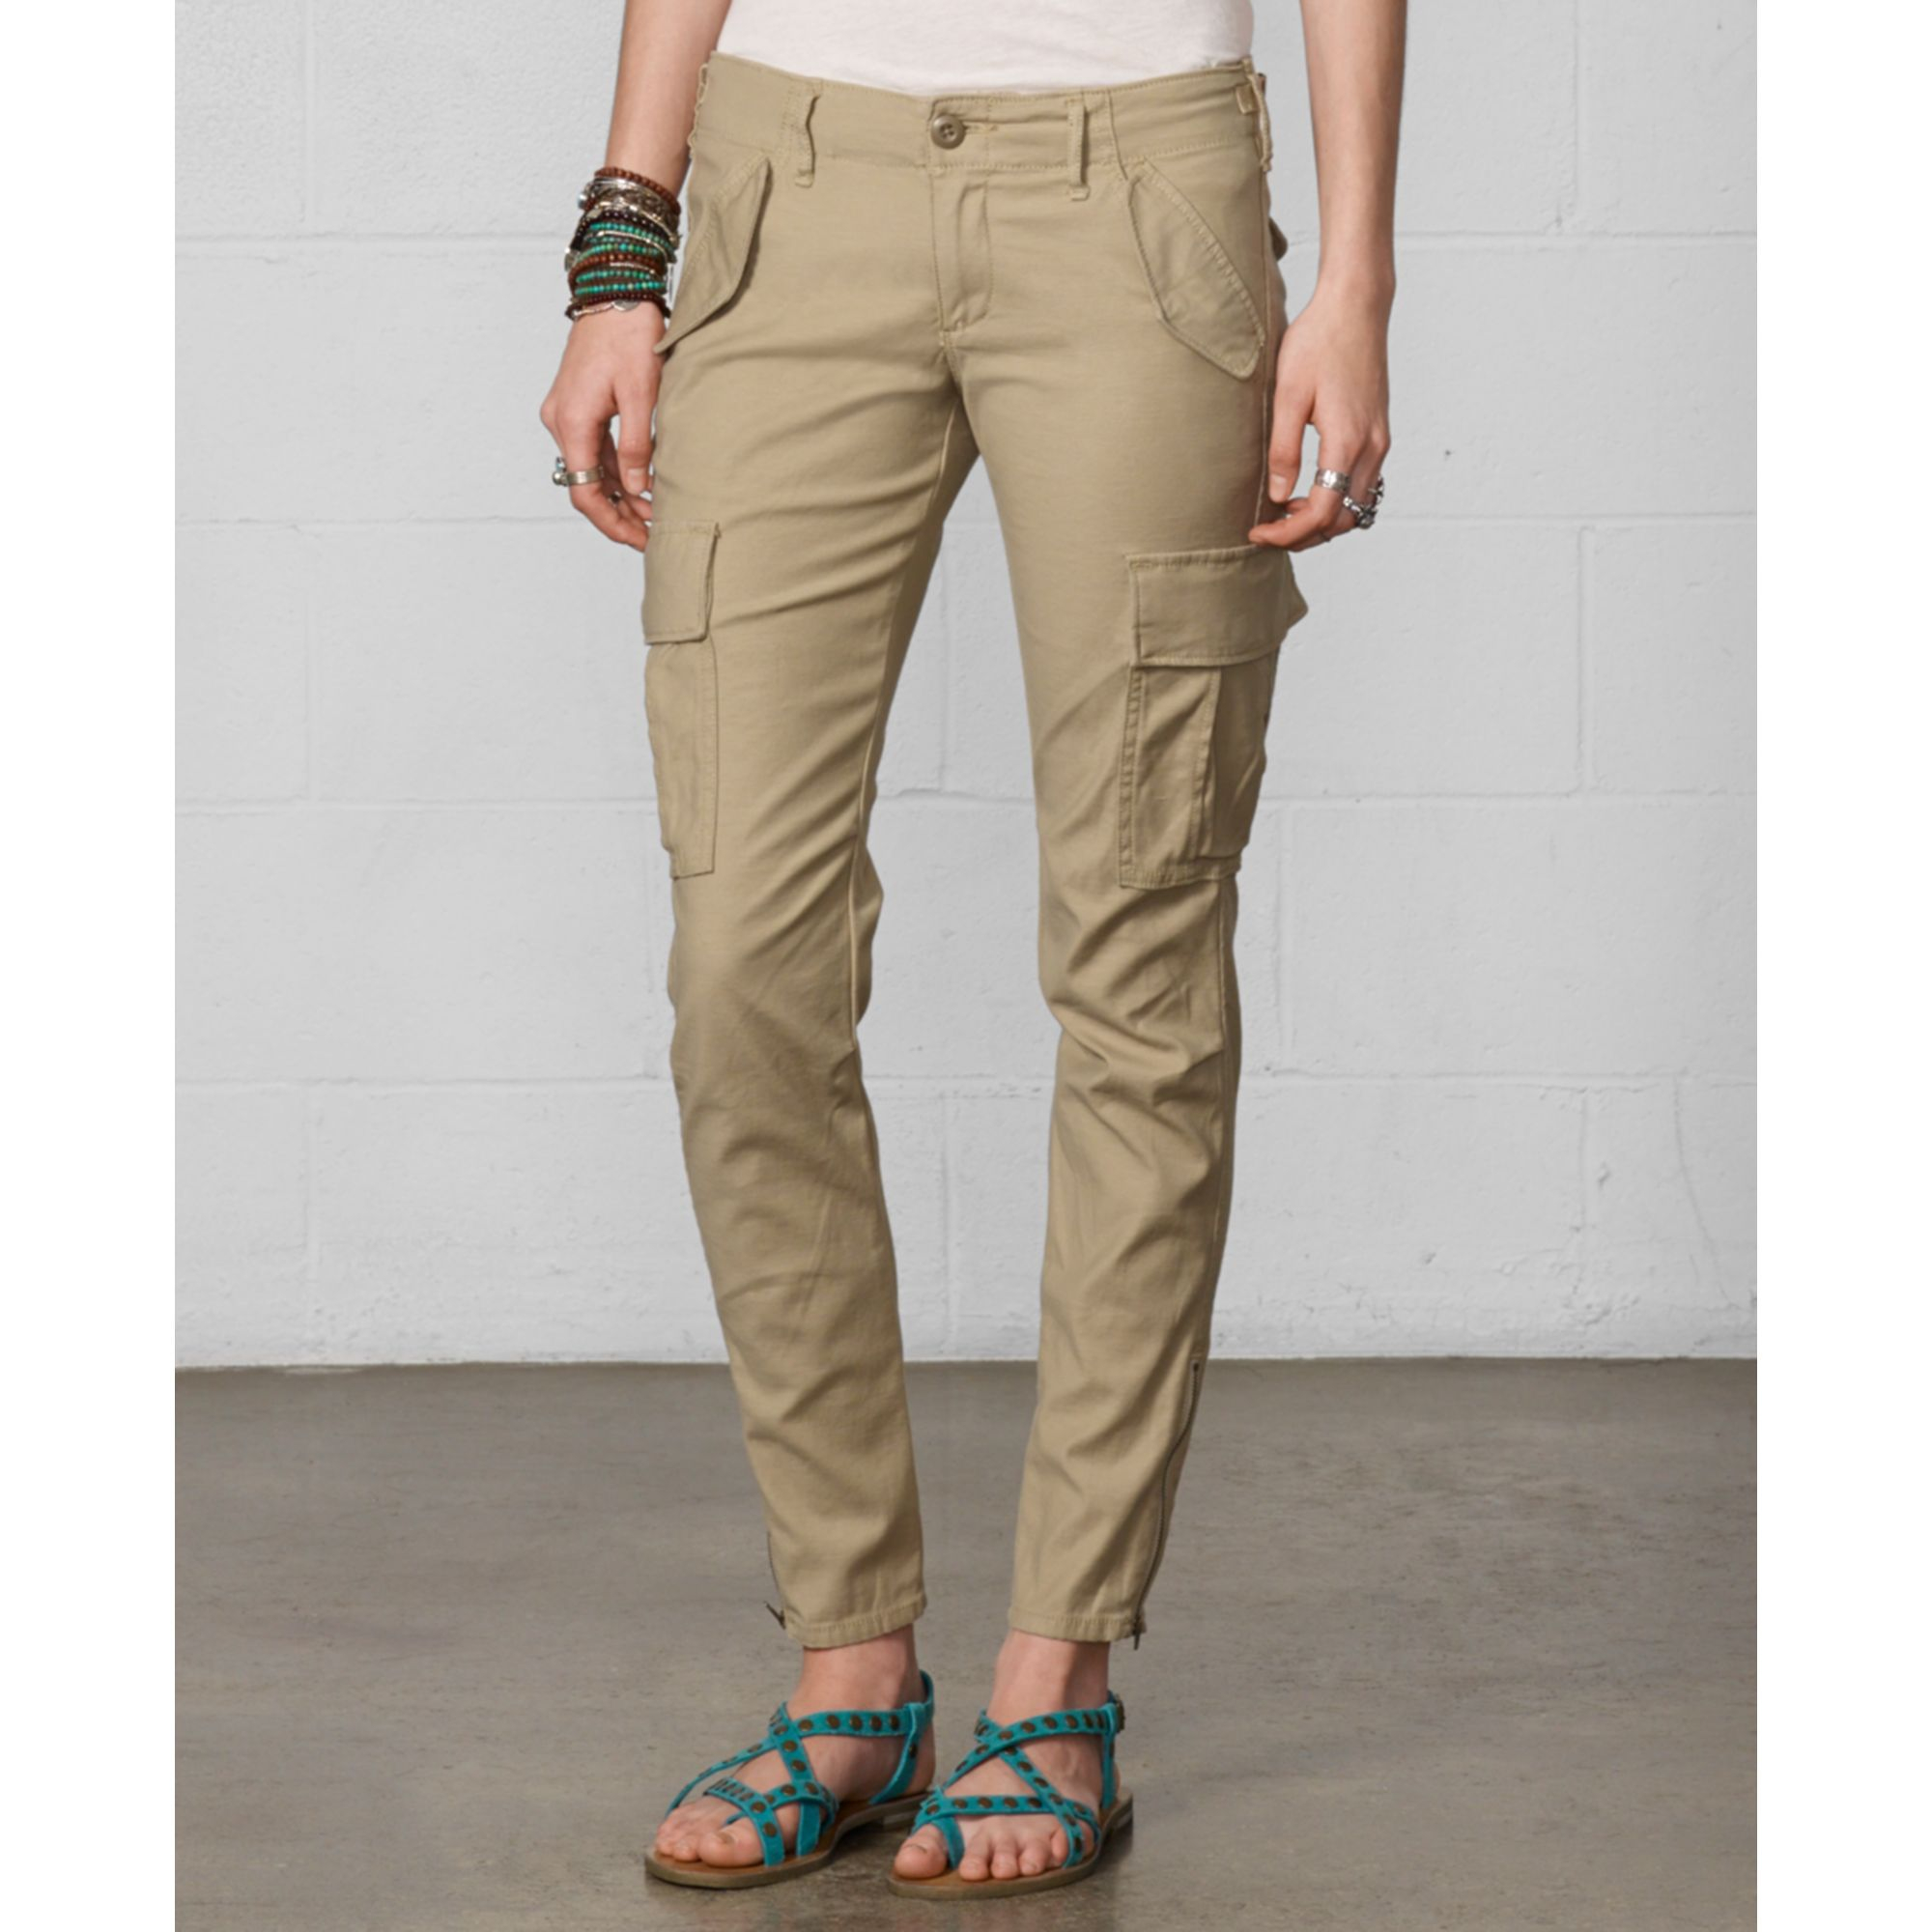 Model Style Watchers In Europe And The United States Have Declared The Musthave Item For Spring, For Men And Women Cargo Pants  Chanel, Ralph Lauren And Even Pucci Offered Their Interpretations Of Cargo Pants &quotTheyre Everywhere,&quot Said